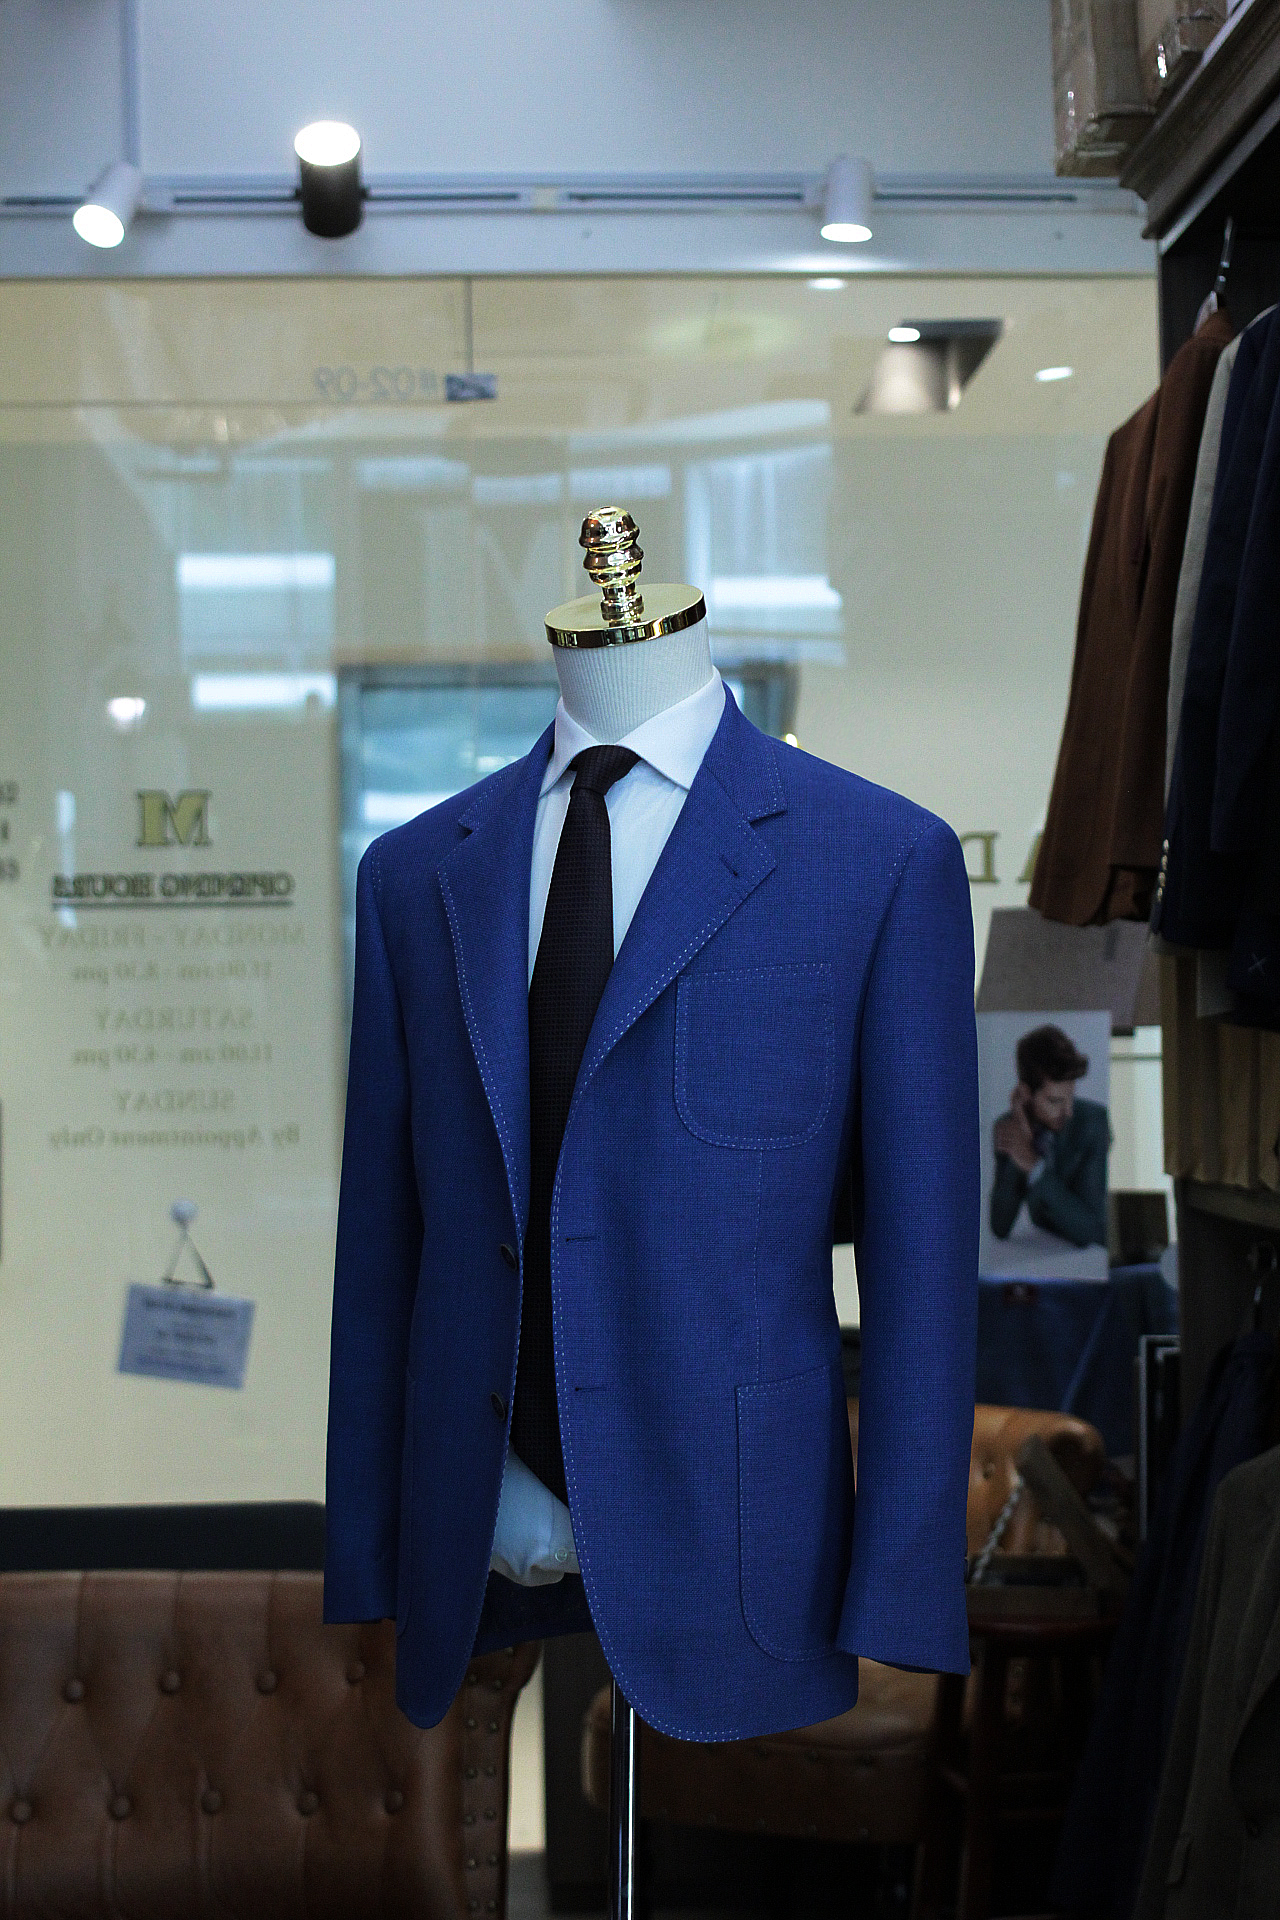 BLUEFEEL | DRAGO | HOPSACK | SUPER 140s Bluefeel hopsack drago spa | made suits | singapore tailor suits side view.JPG